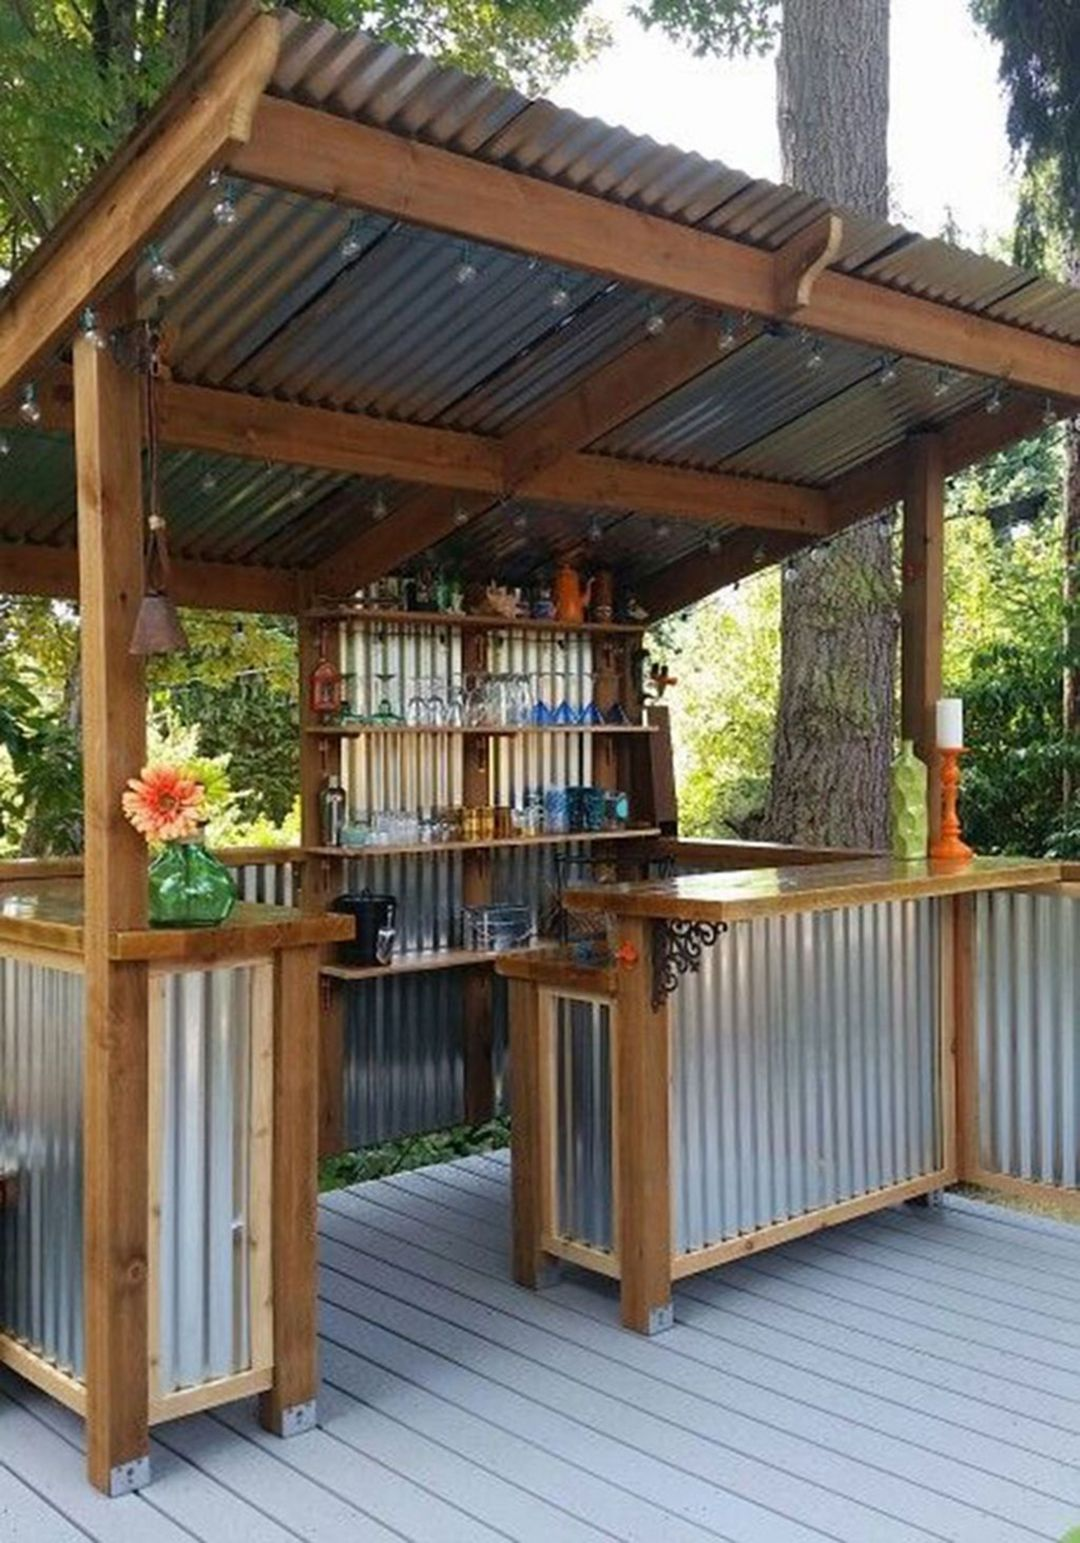 12 Wonderful Outdoor Bar Design Ideas For Outdoor Inspirations En